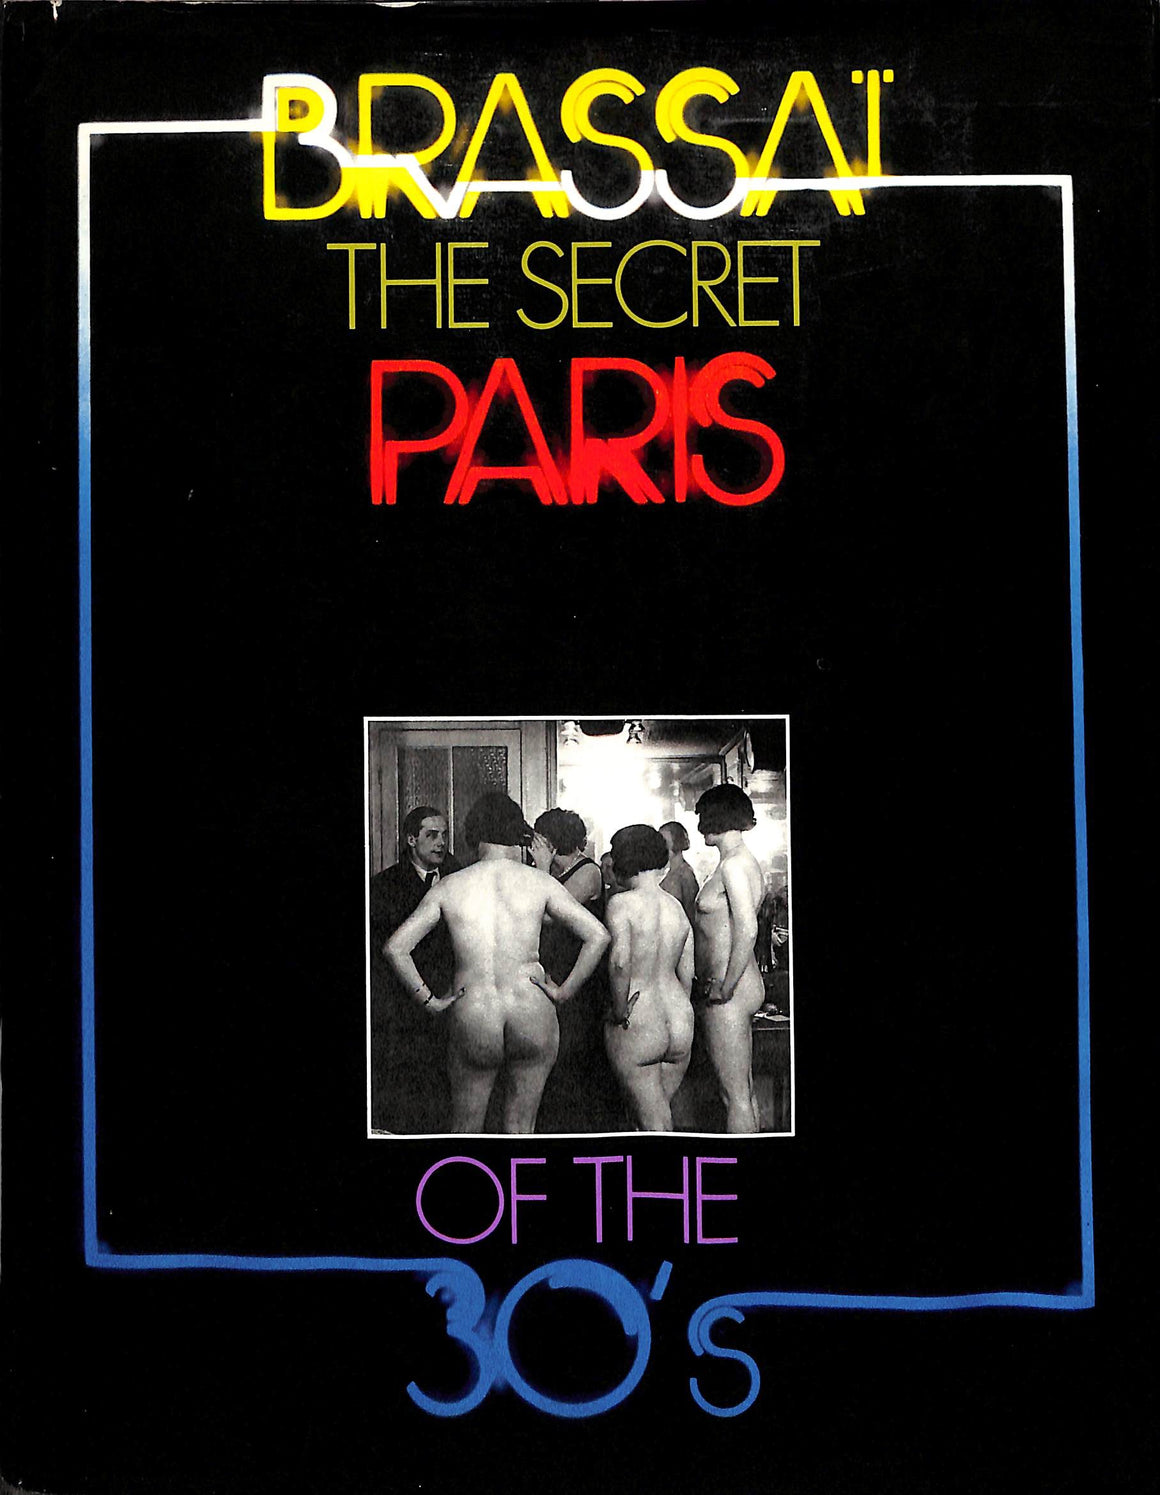 """Brassai The Secret Paris of the 30's"" 1976 MILLER, Richard"